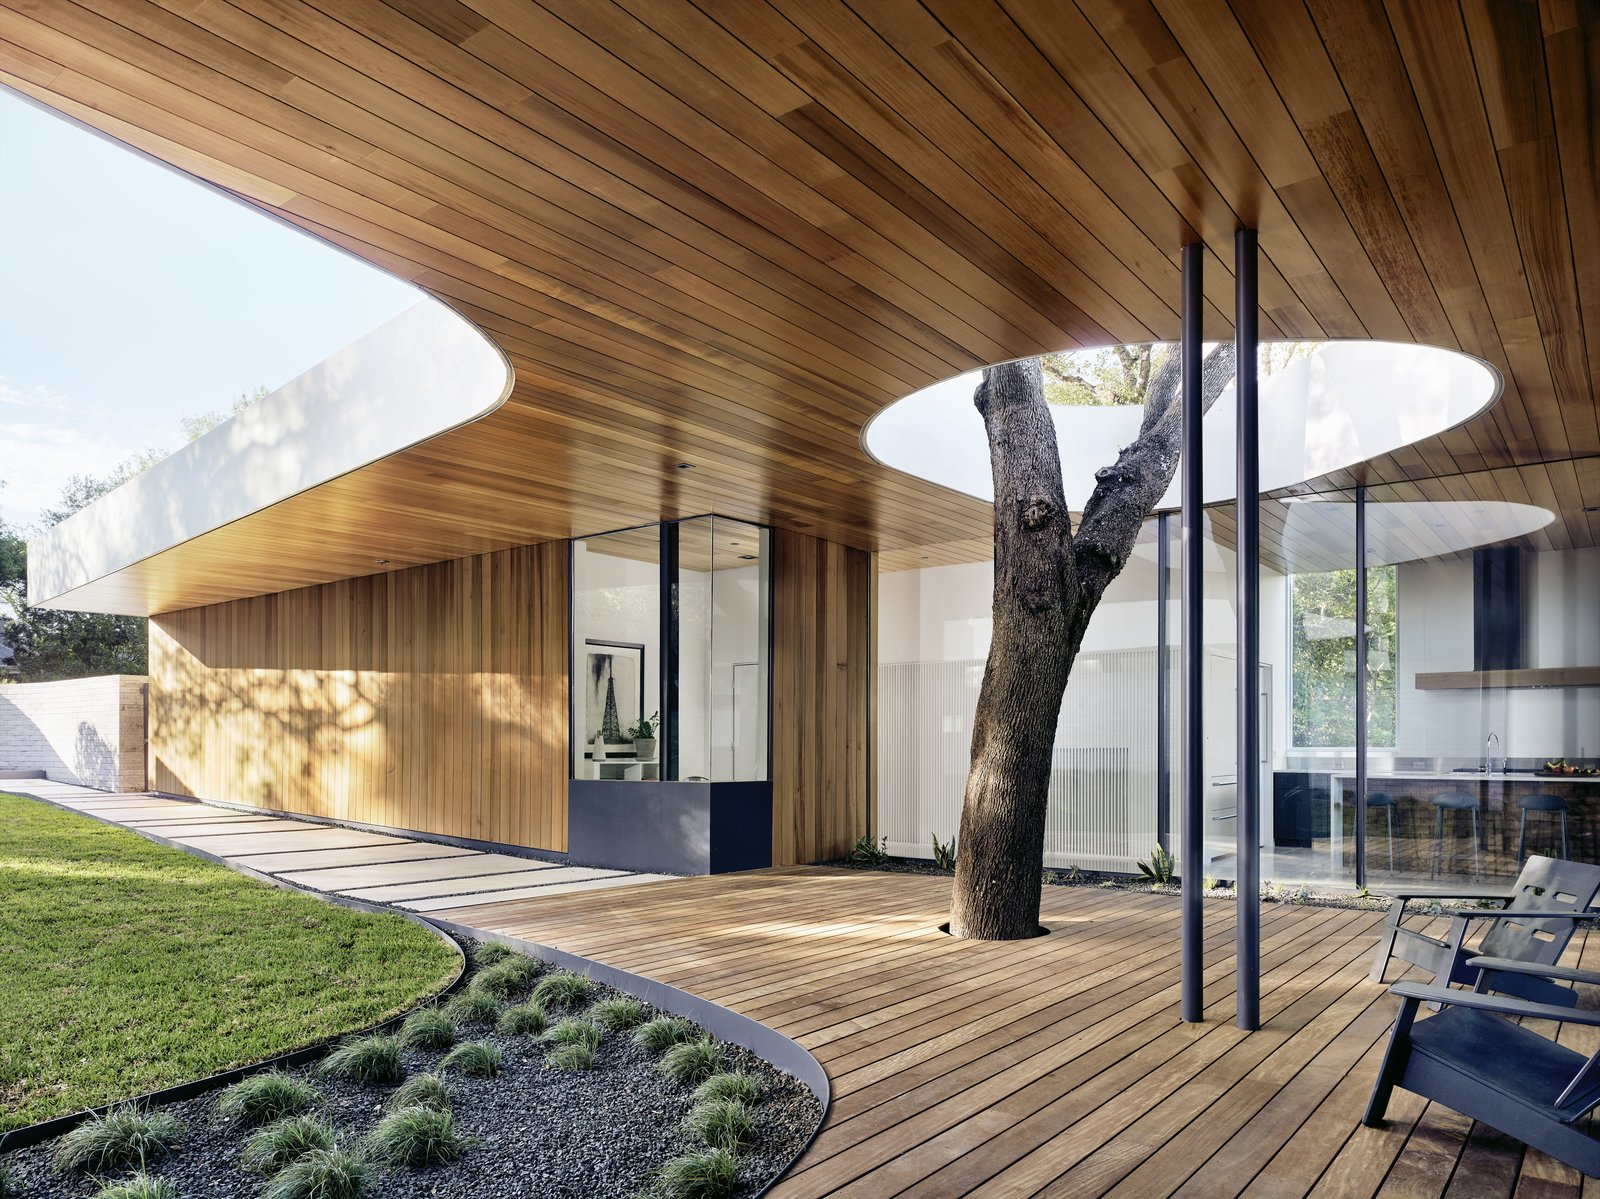 """Julie and Chris Hill's home in Austin is built around a pair of massive oak trees, one of which shoots through an ipe deck, past a pair of Loll deck chairs, and into a void in the overhanging roof. """"The hole also allows light to penetrate deeper into the house,"""" notes designer Kevin Alter."""